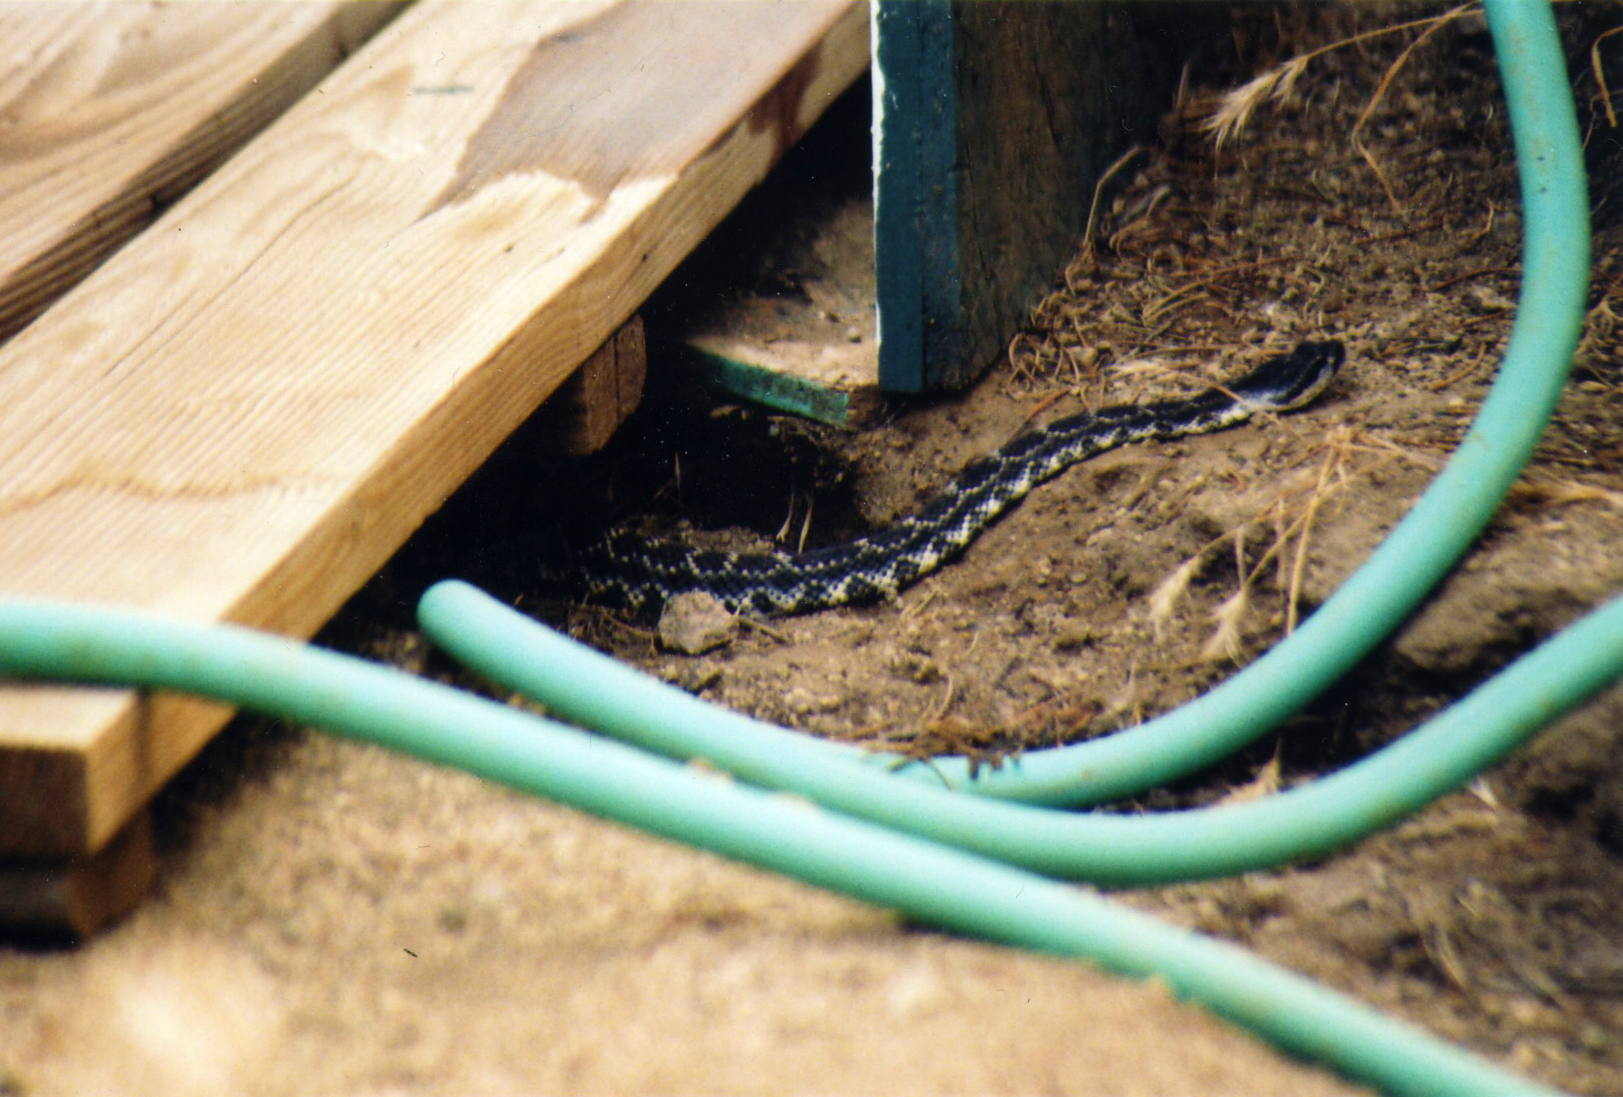 Visitor to the camp shower. Fortunately he/she was just leaving as we came into camp to take our showers.